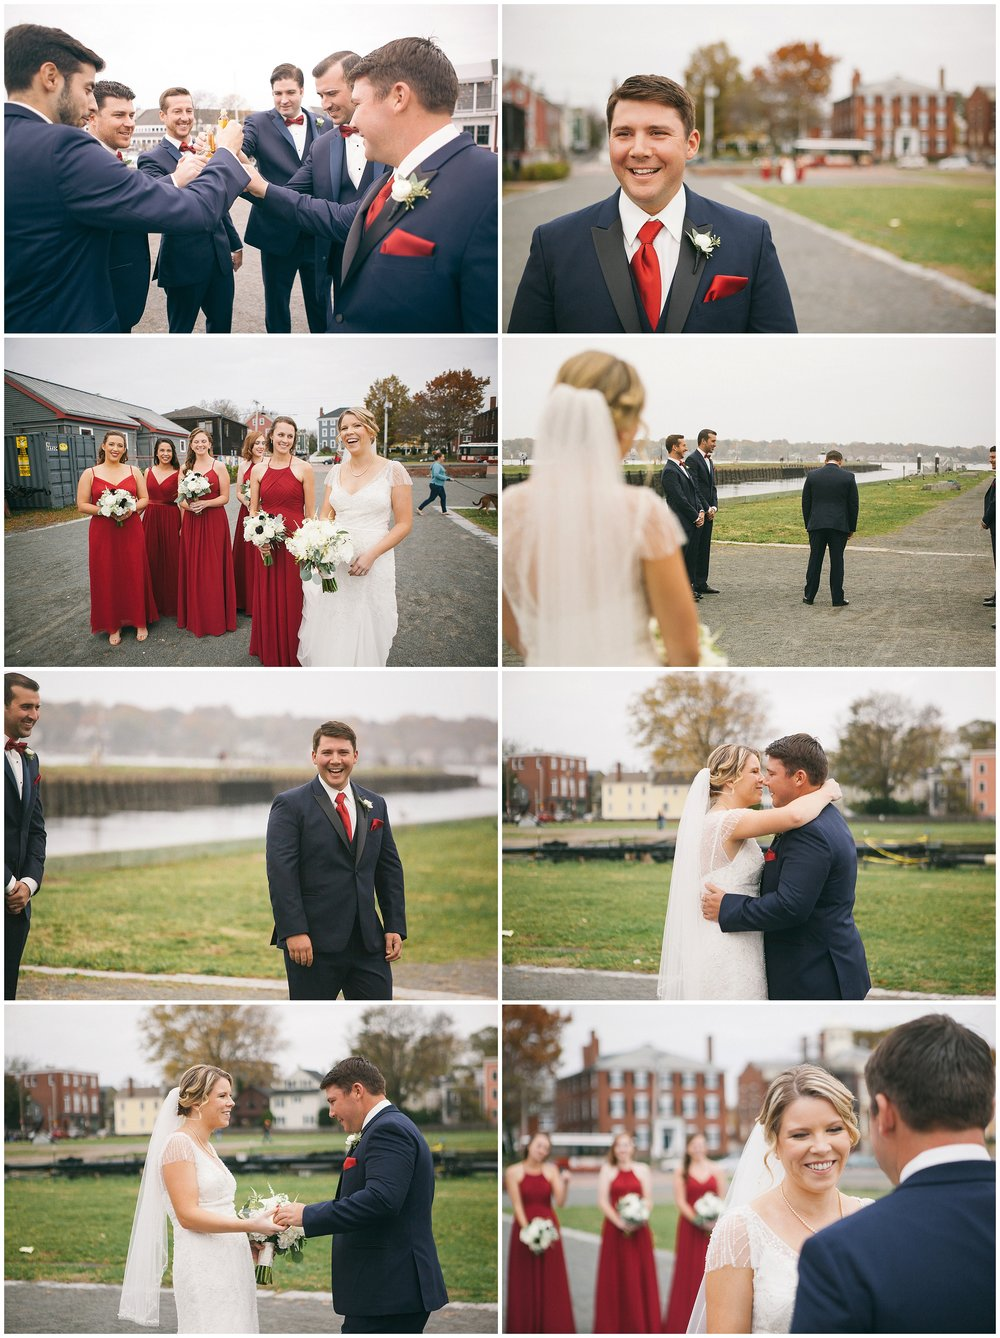 A bride is revealed during the wedding photography first look in Salem's historic waterfront district - Wedding Photography by Ryan Richardson Photography.